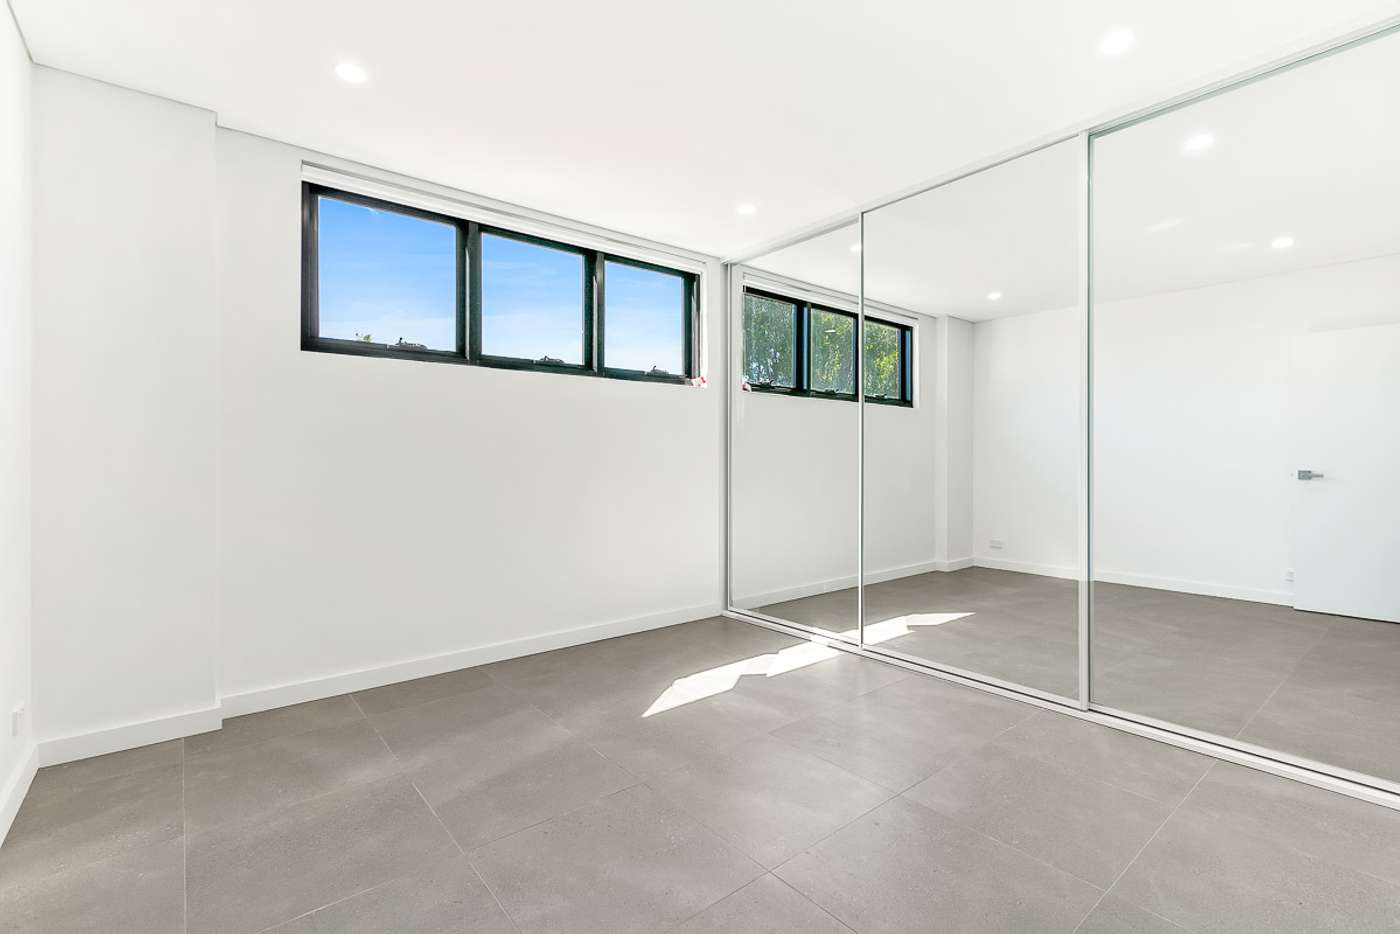 Seventh view of Homely apartment listing, 265 Hume Hwy, Greenacre NSW 2190